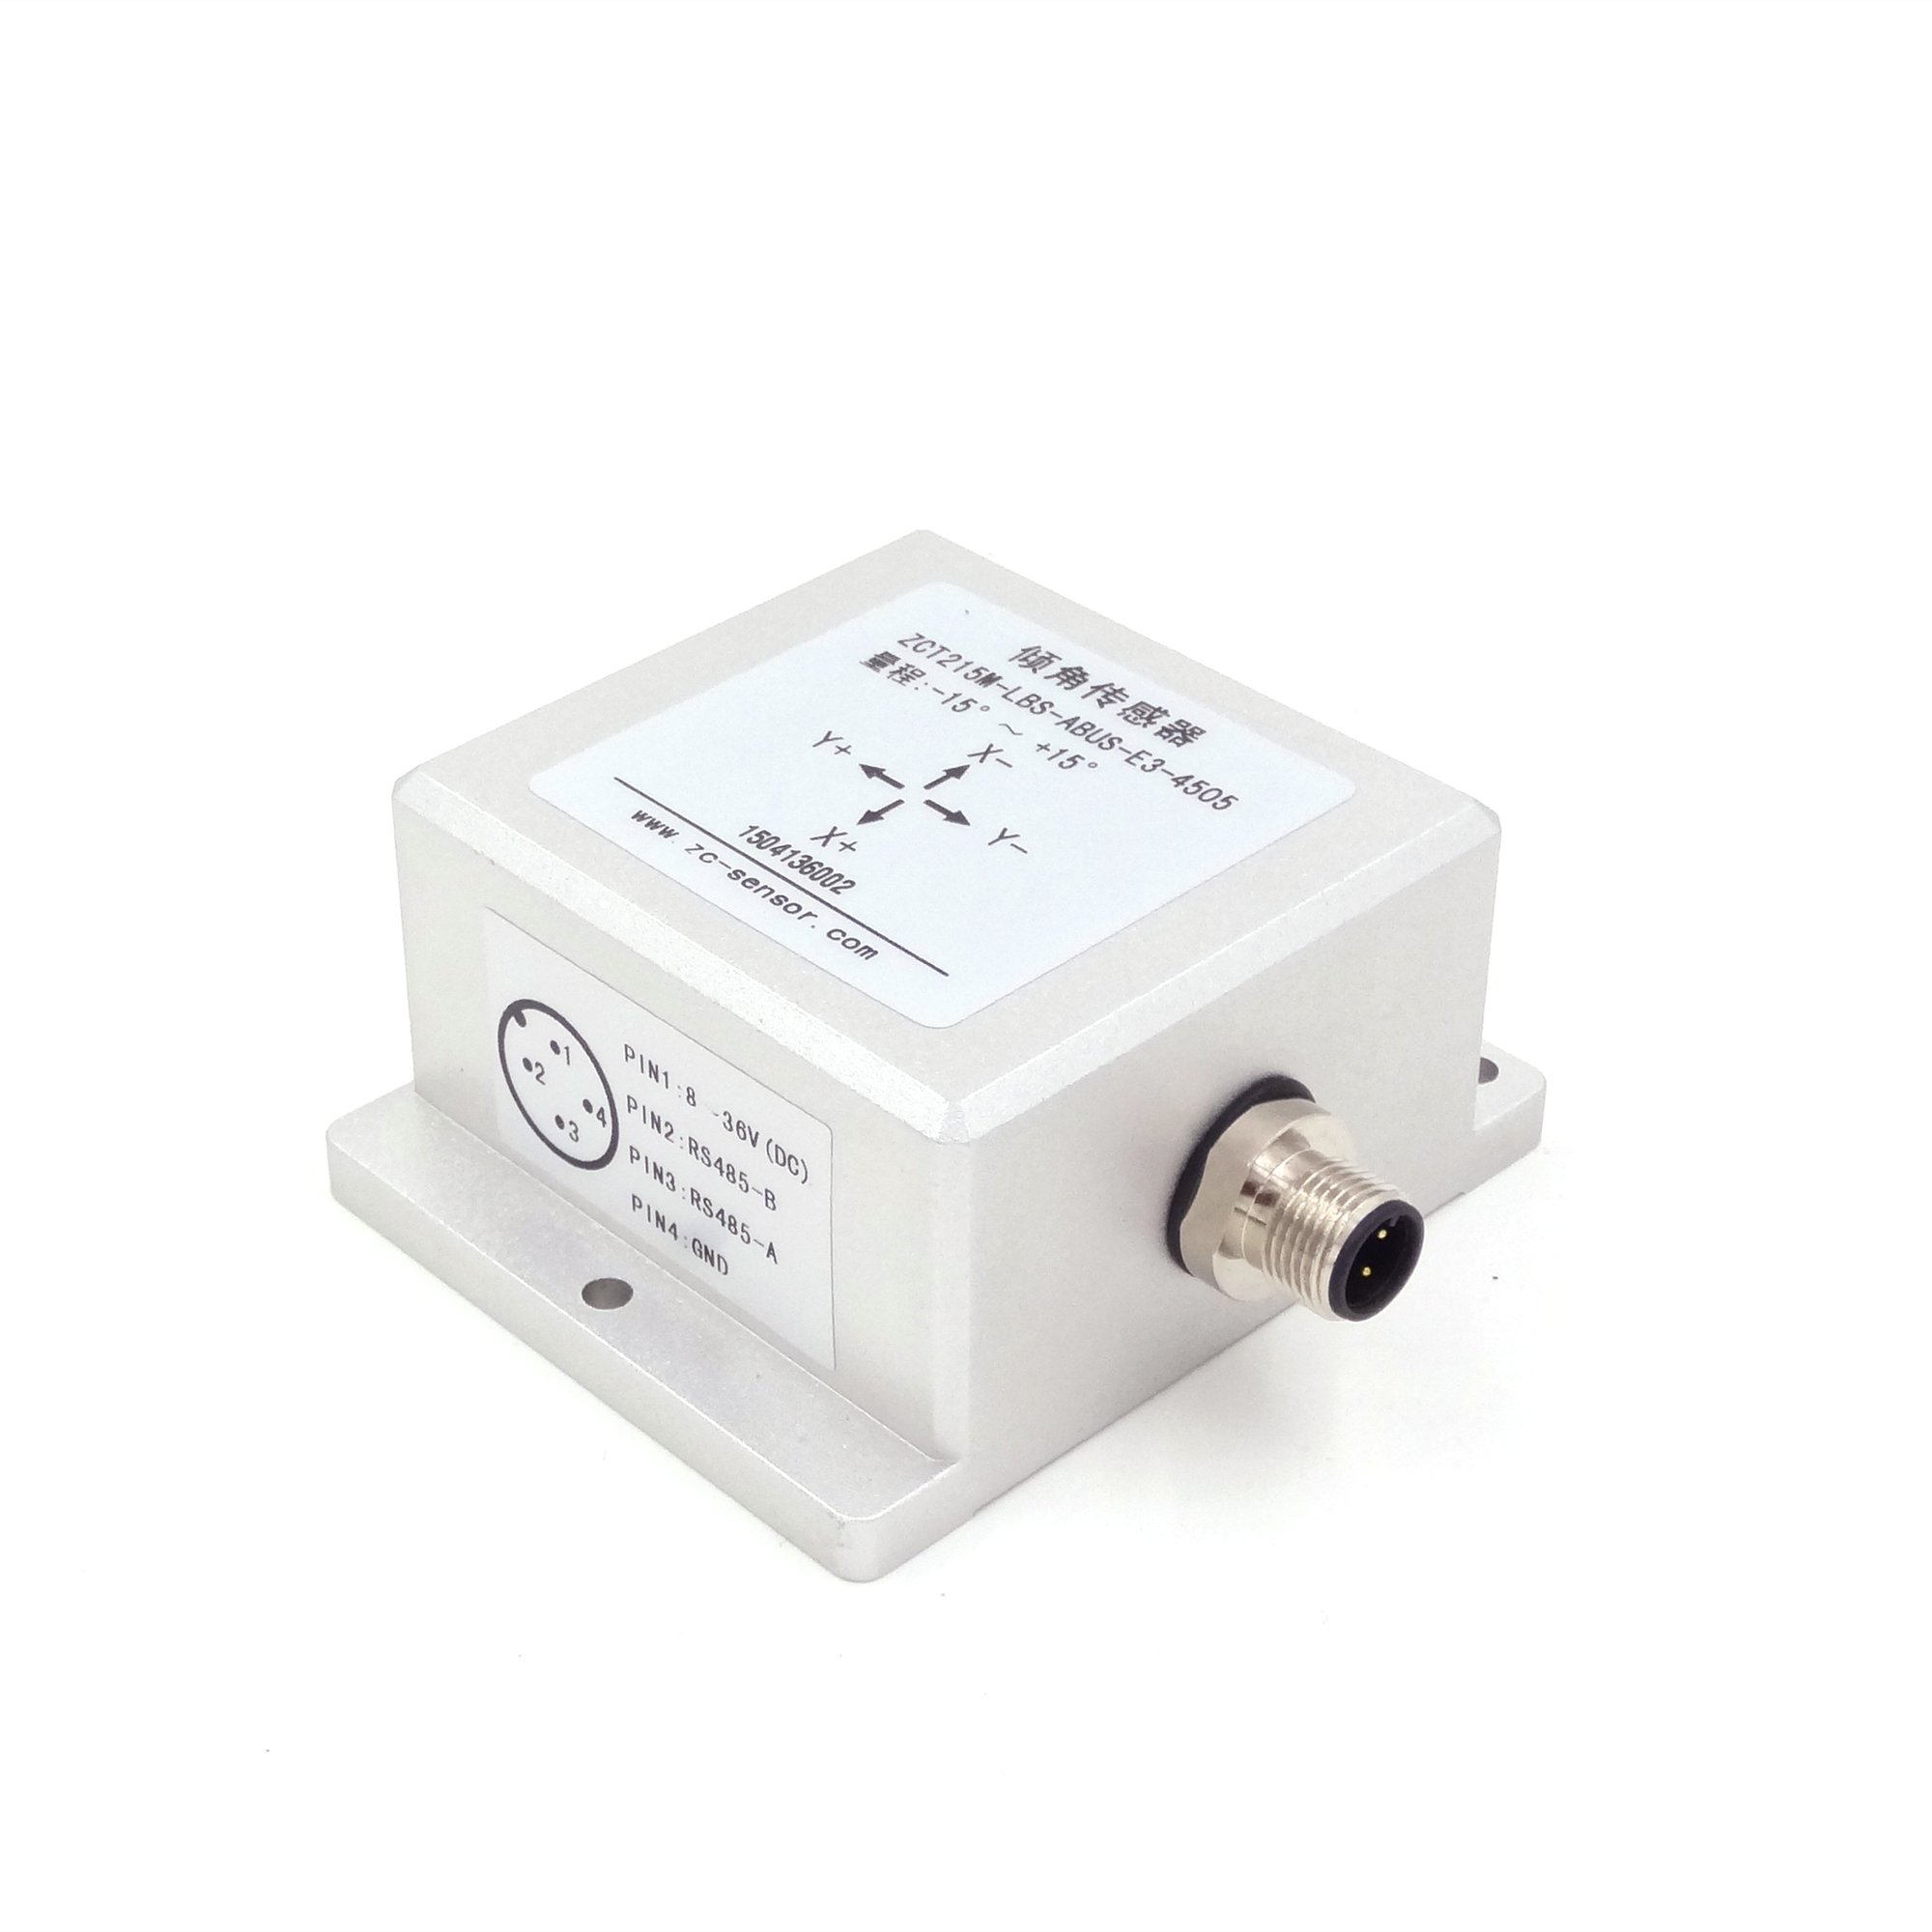 » High Accuracy Dual axis Digital Inclinometer